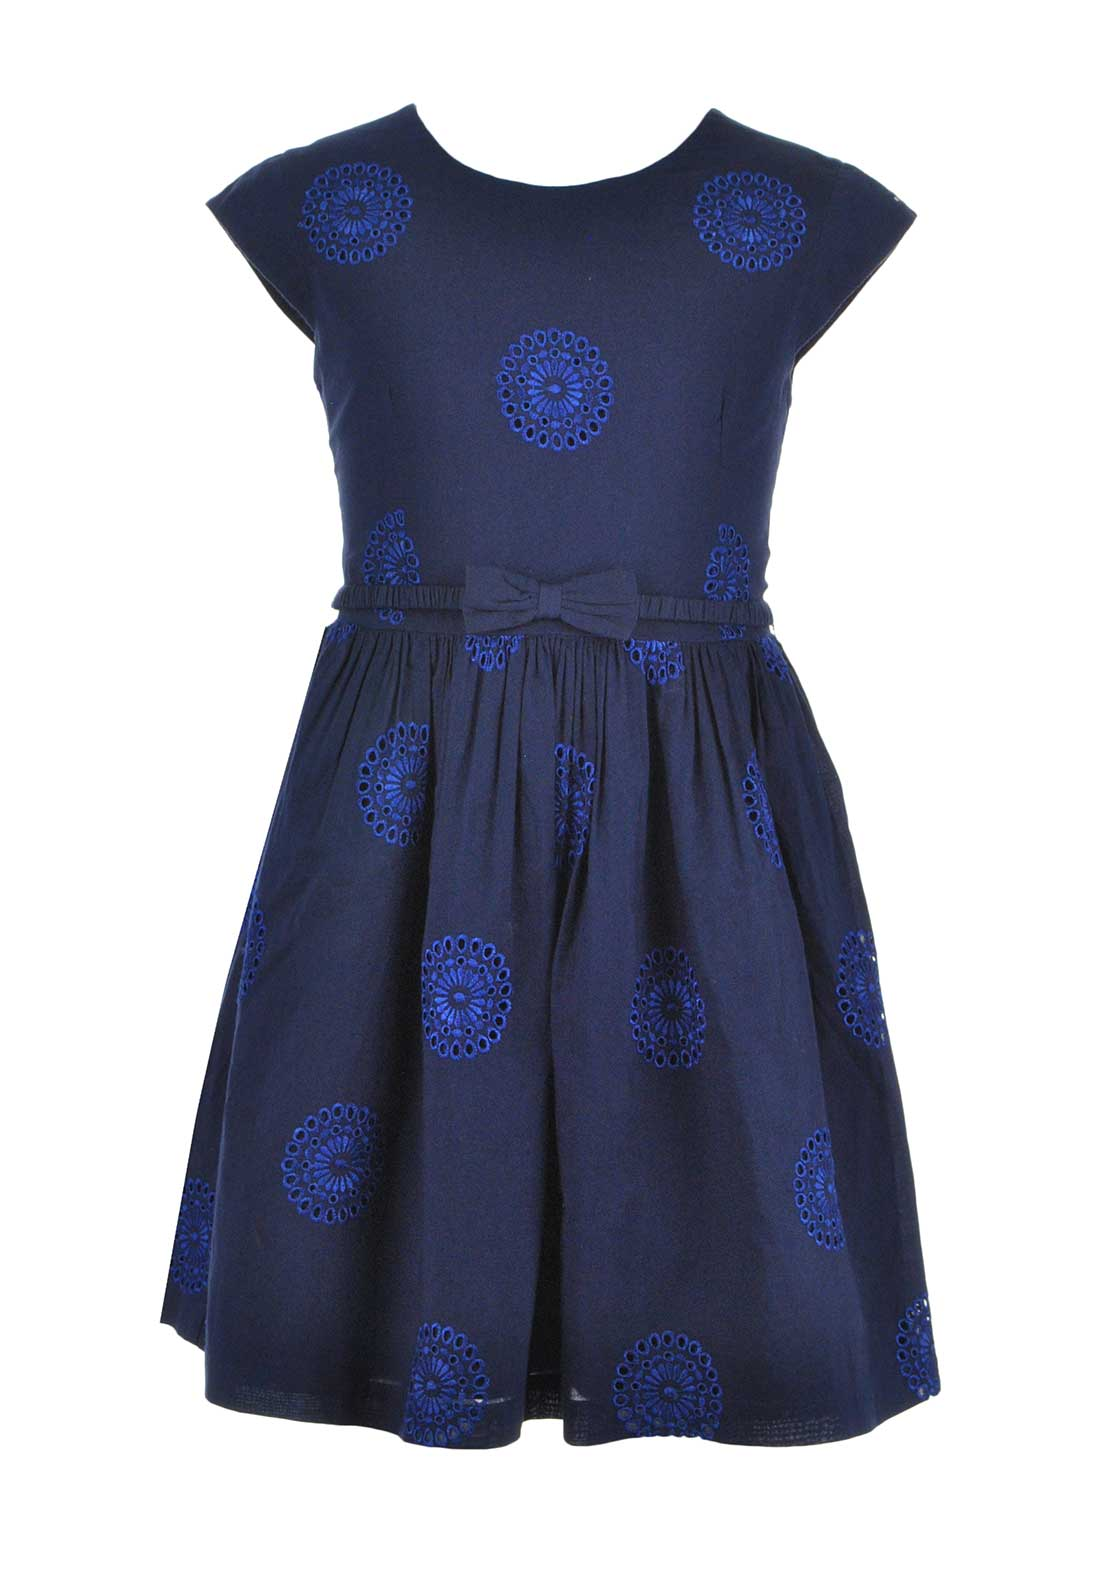 Tommy Hilfiger Girls Circle Crochet Print Dress, Navy